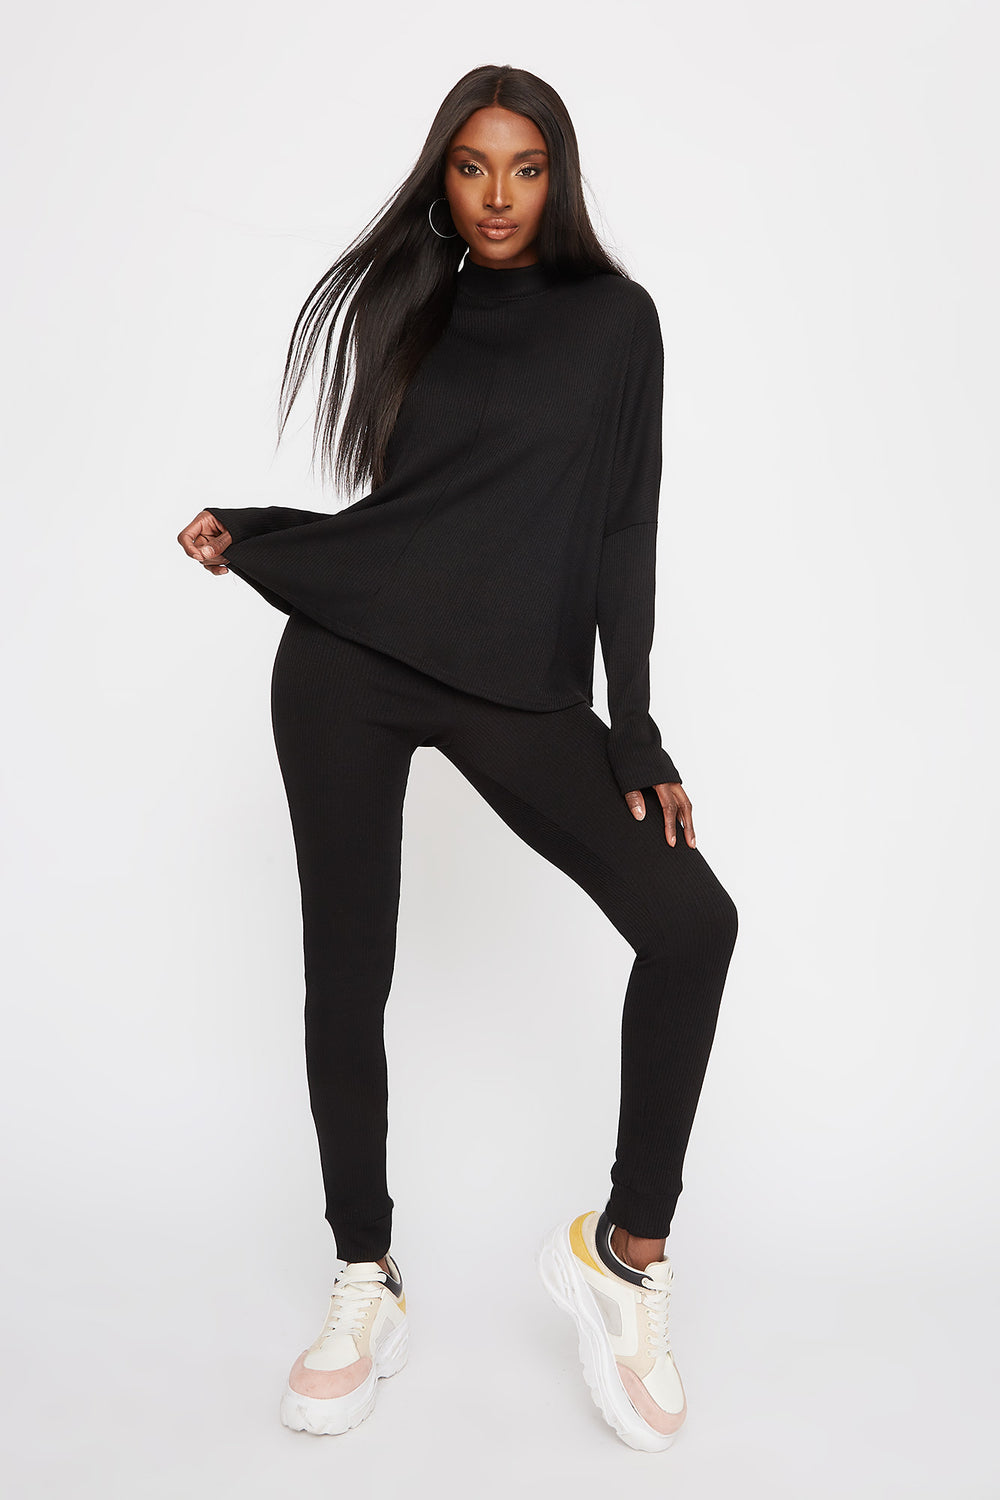 Ribbed Mock Neck Dolman Long Sleeve Black